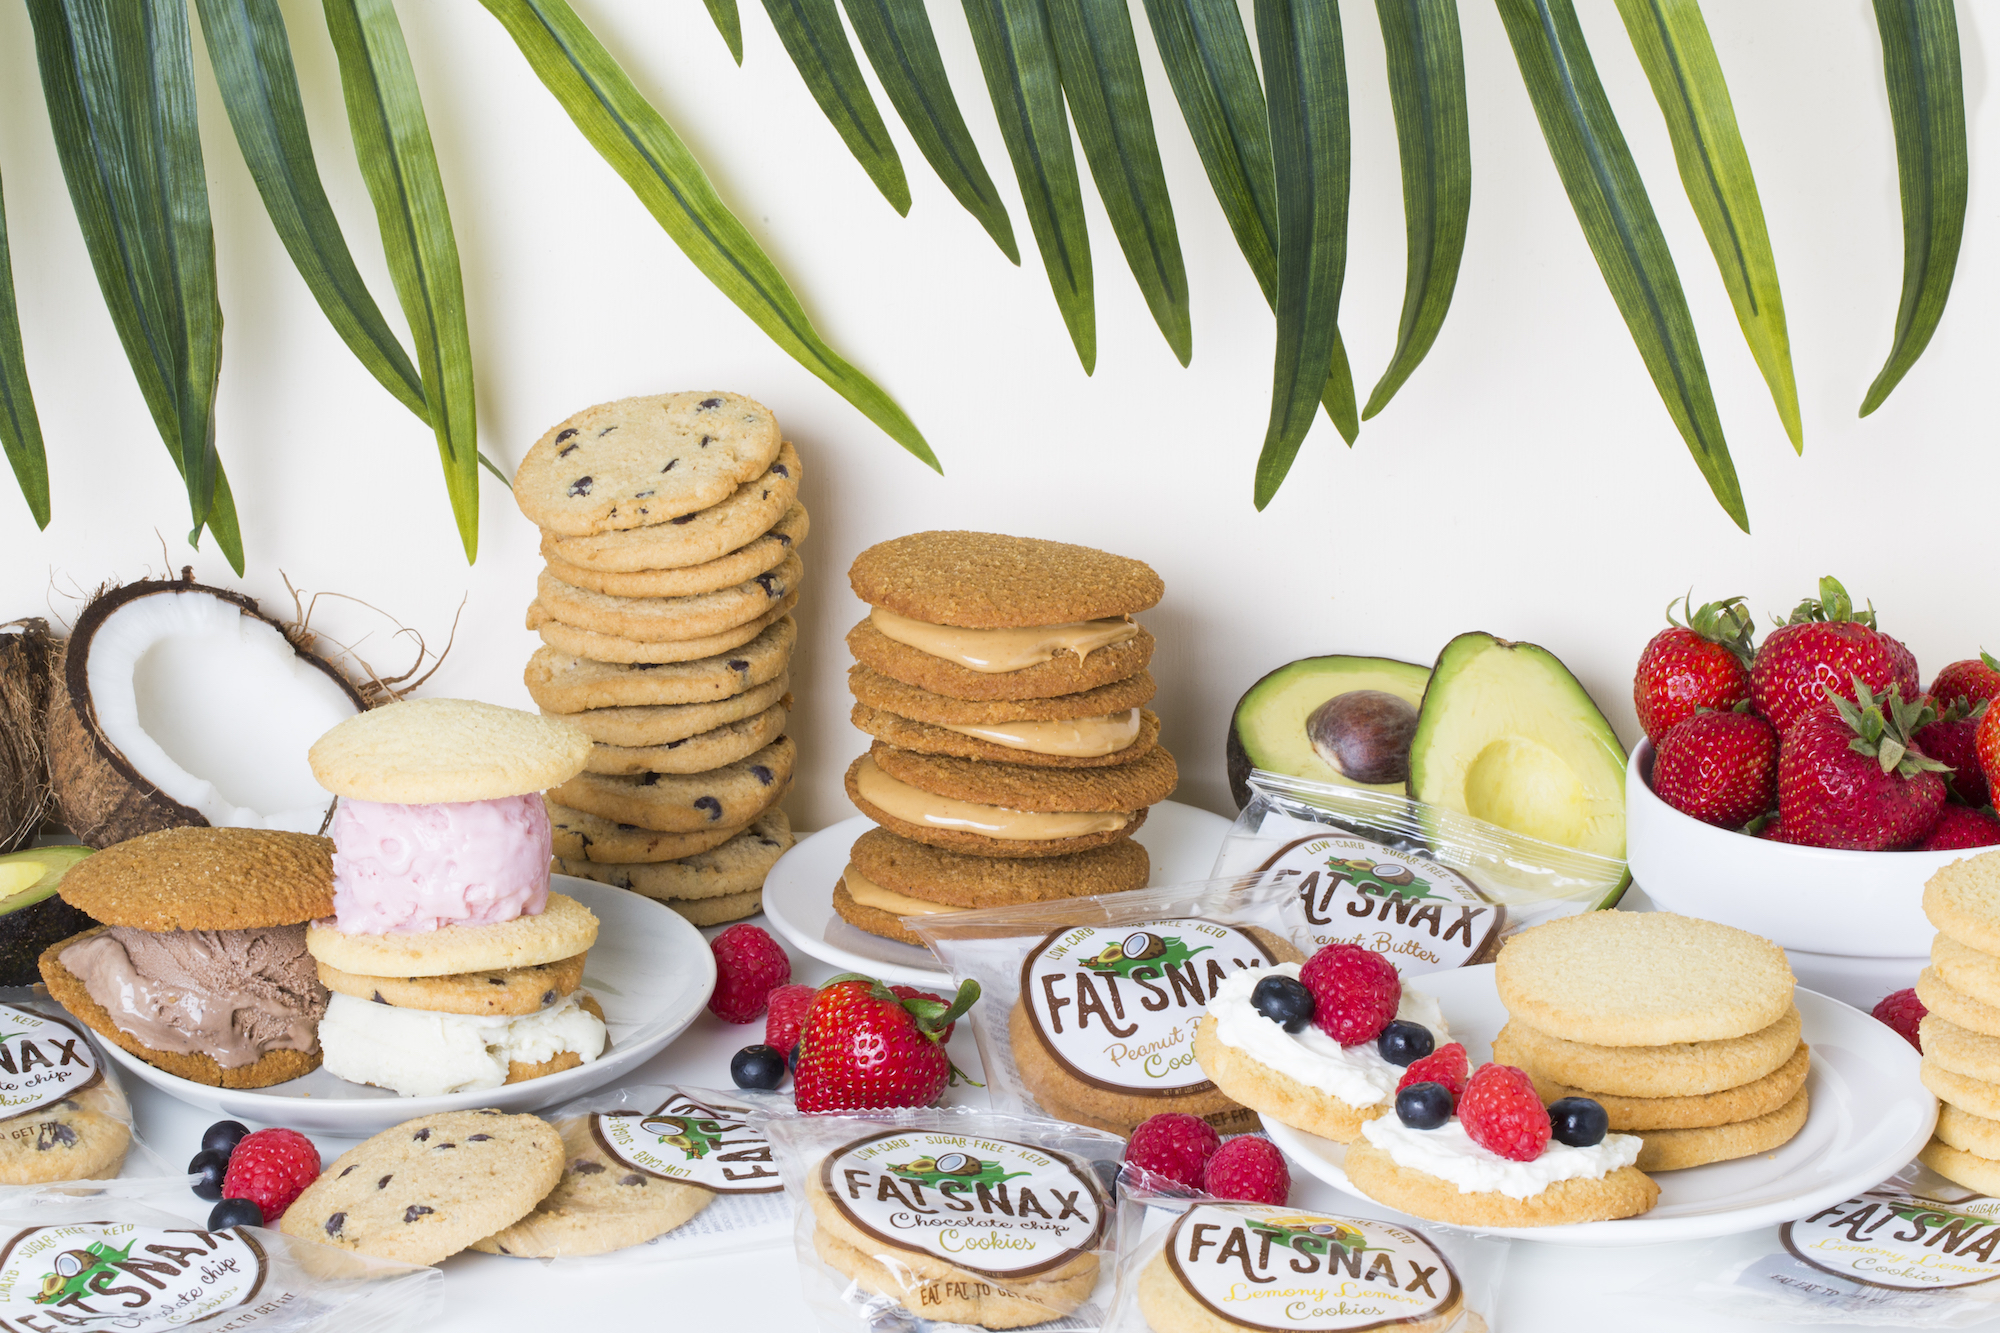 Keto Cookie Startup Fat Snax Launches Into Retail